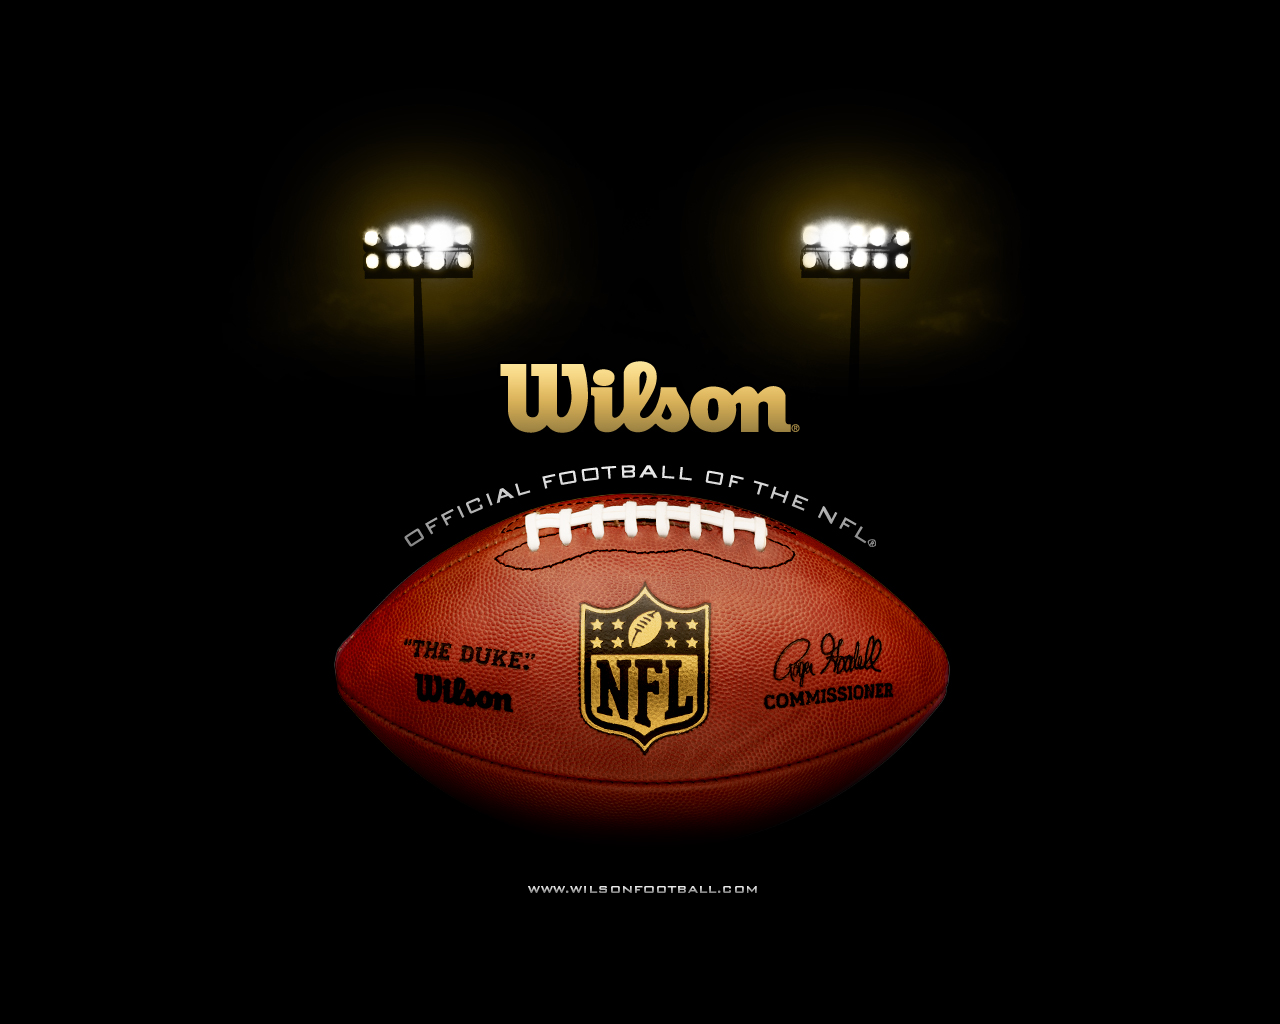 NFL screen savers to download NFL screen NFL Team 1280x1024